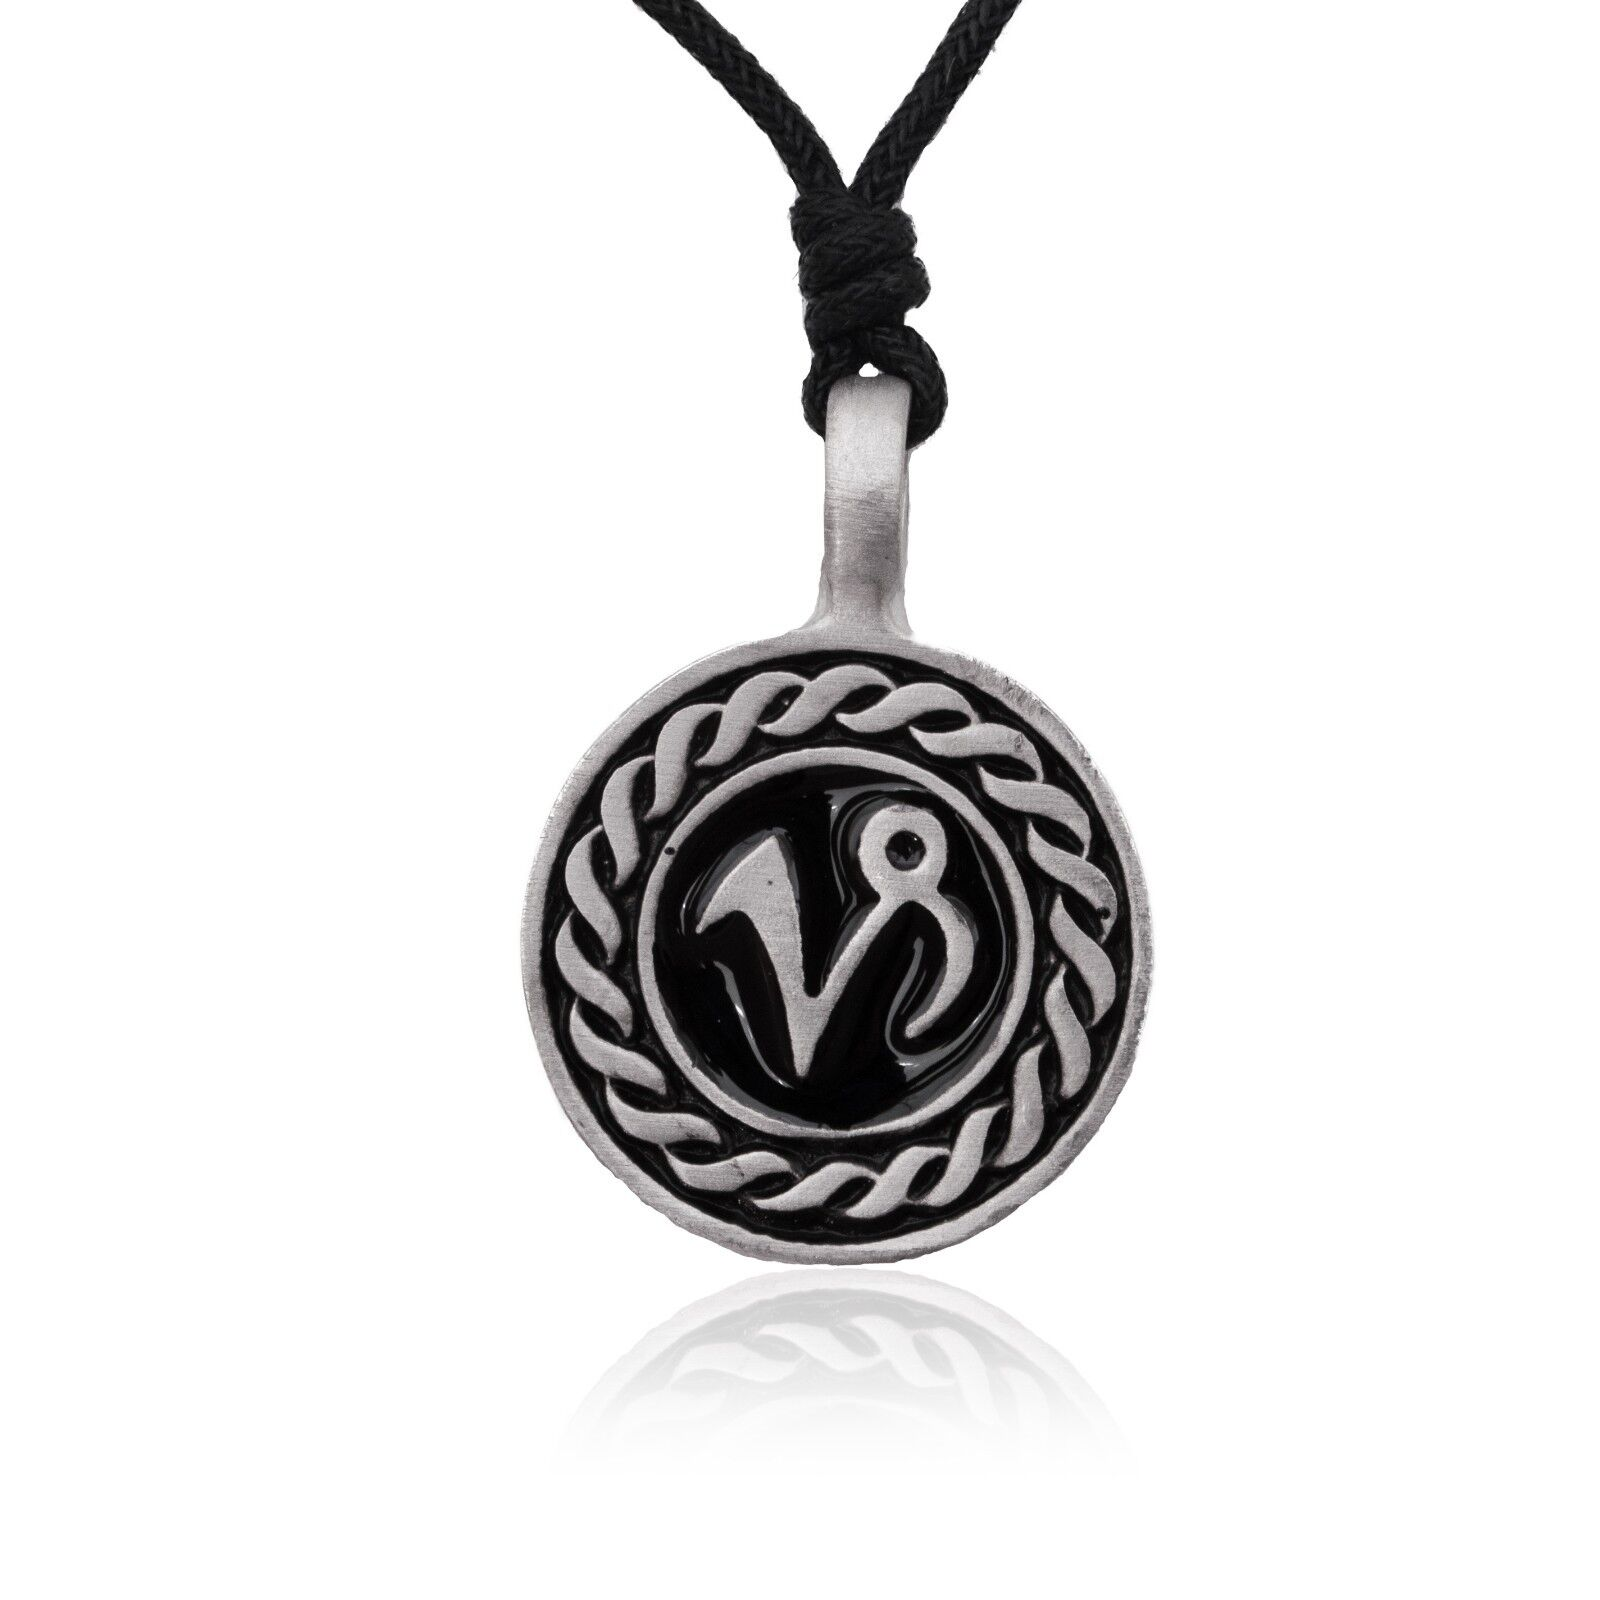 Astrology Necklace Pendant Zodiac Horoscope Jewelry Quality Fine Silver Pewter